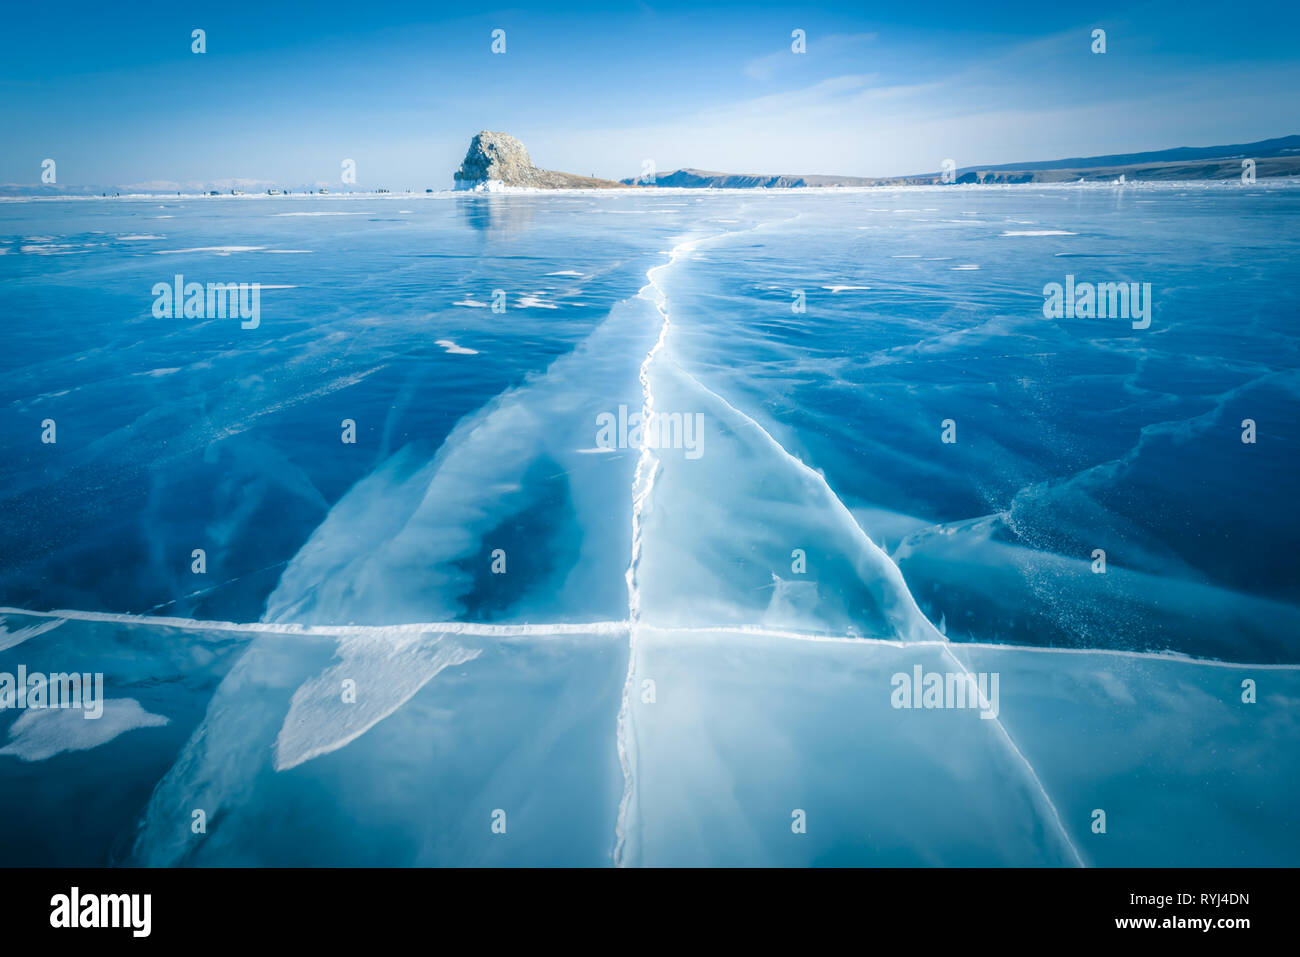 Natural breaking ice in frozen water at Lake Baikal, Siberia, Russia. Stock Photo